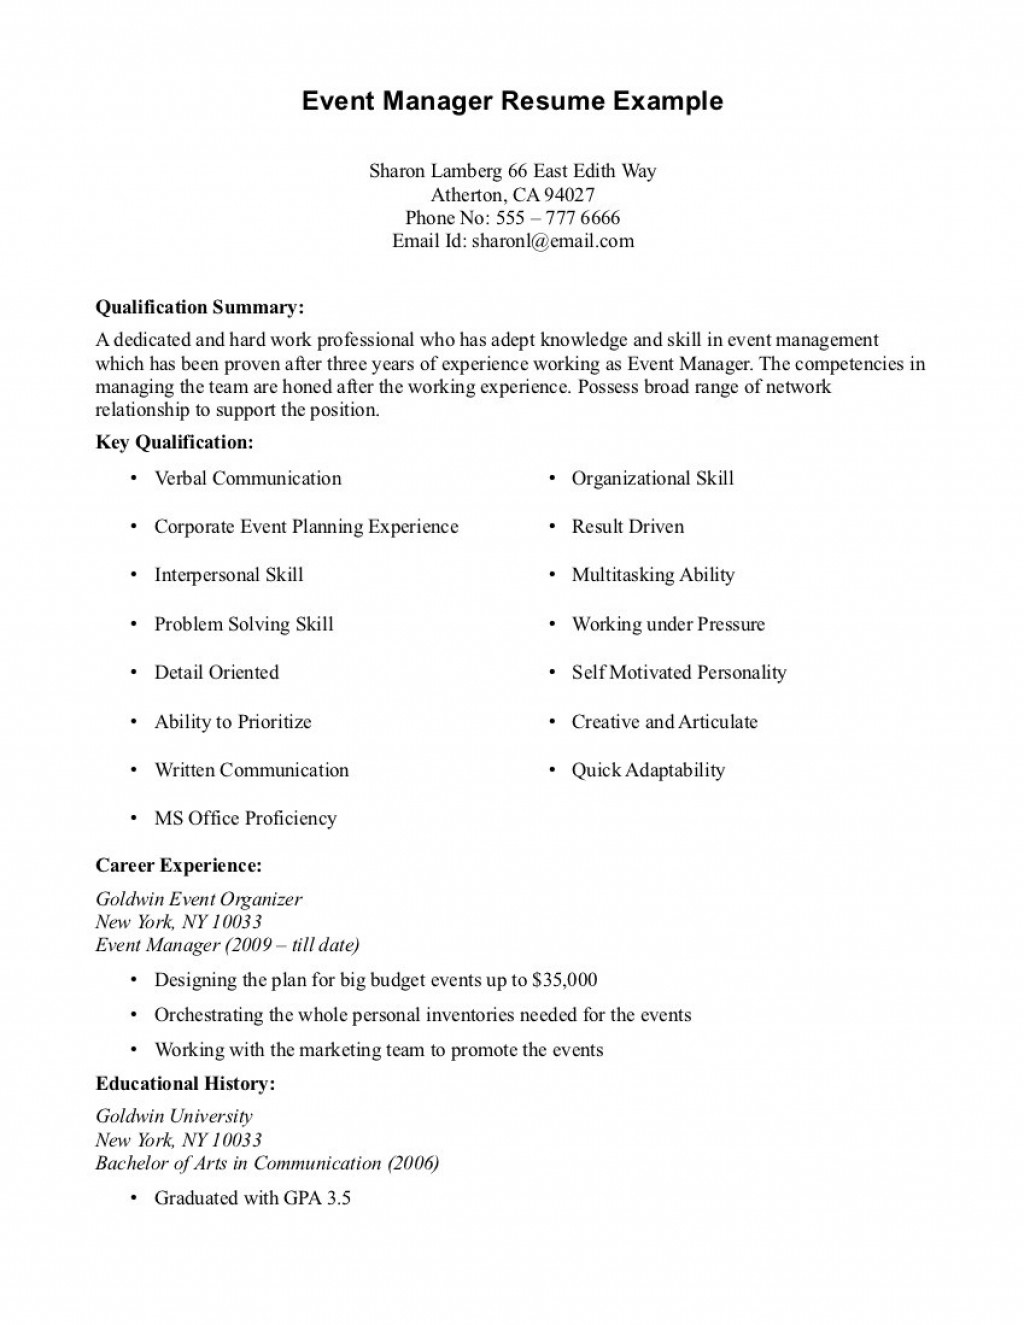 013 Working Resume Sample Expository Essay On Decision Making Buy Argumentative With Research Paper Vs Awful Essays Large